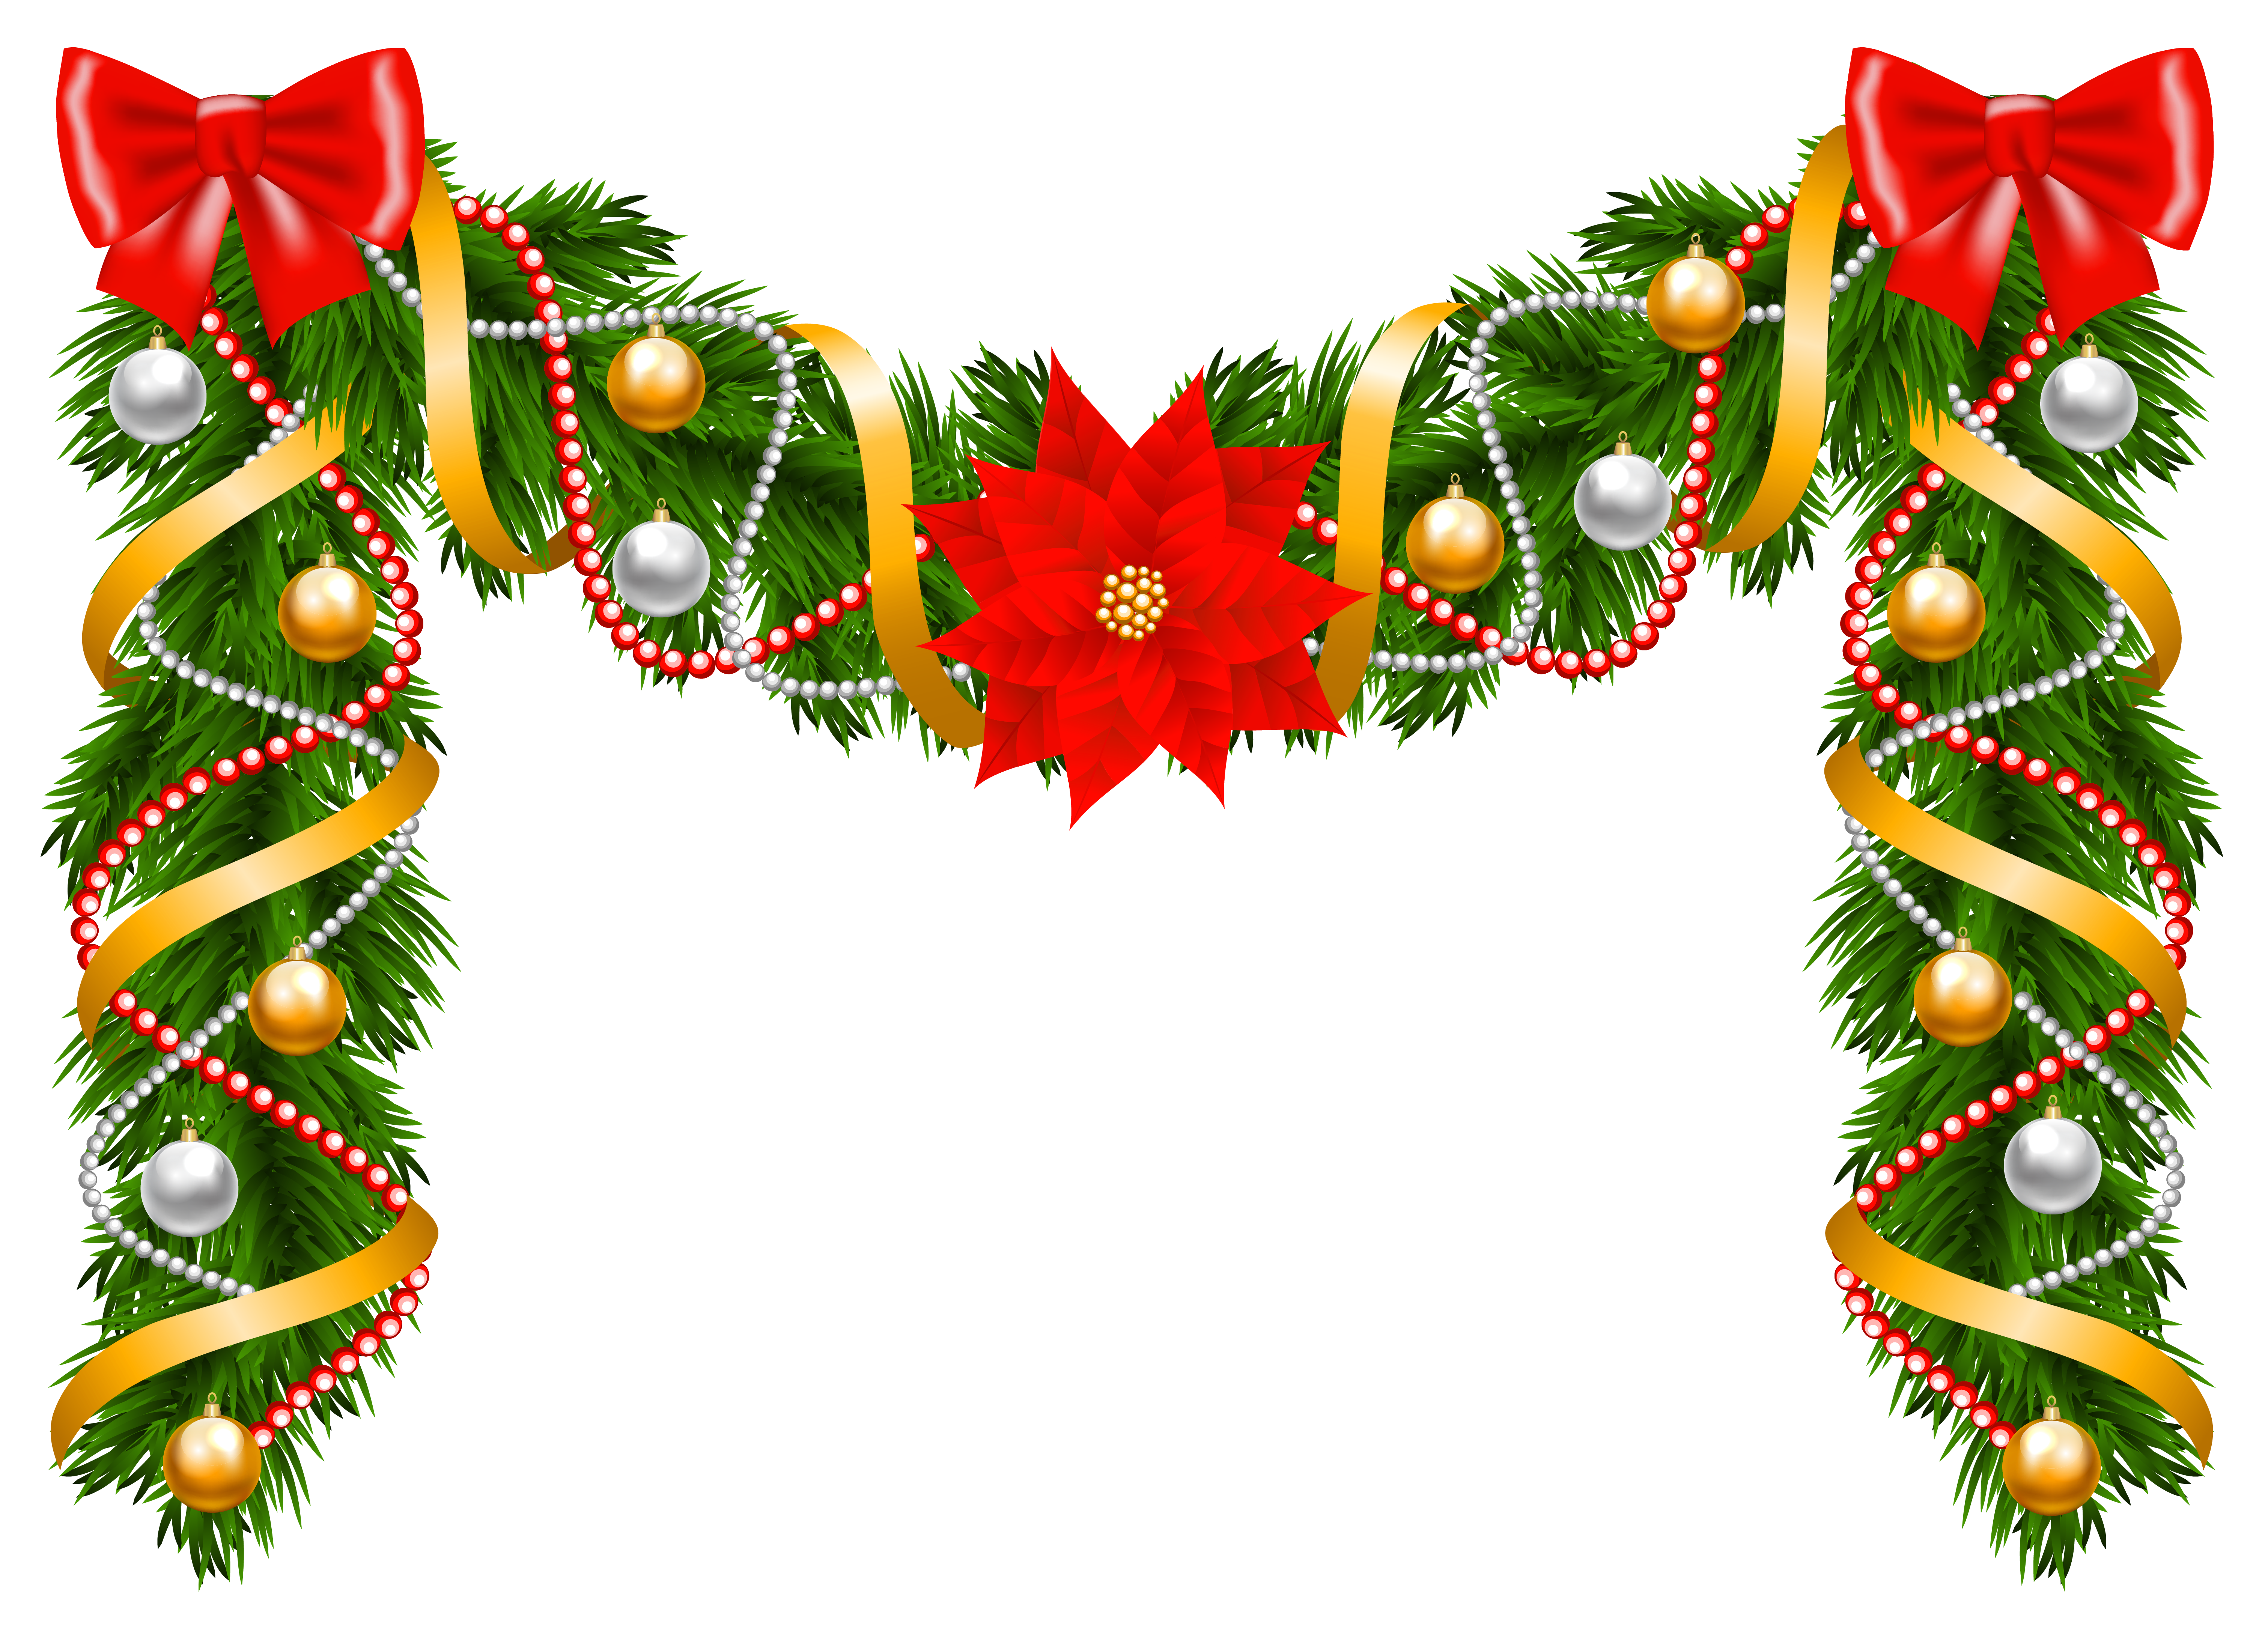 Christmas Deco Garland Png Clip Art Image Christmas Prints Christmas Clipart Paper Flowers Craft